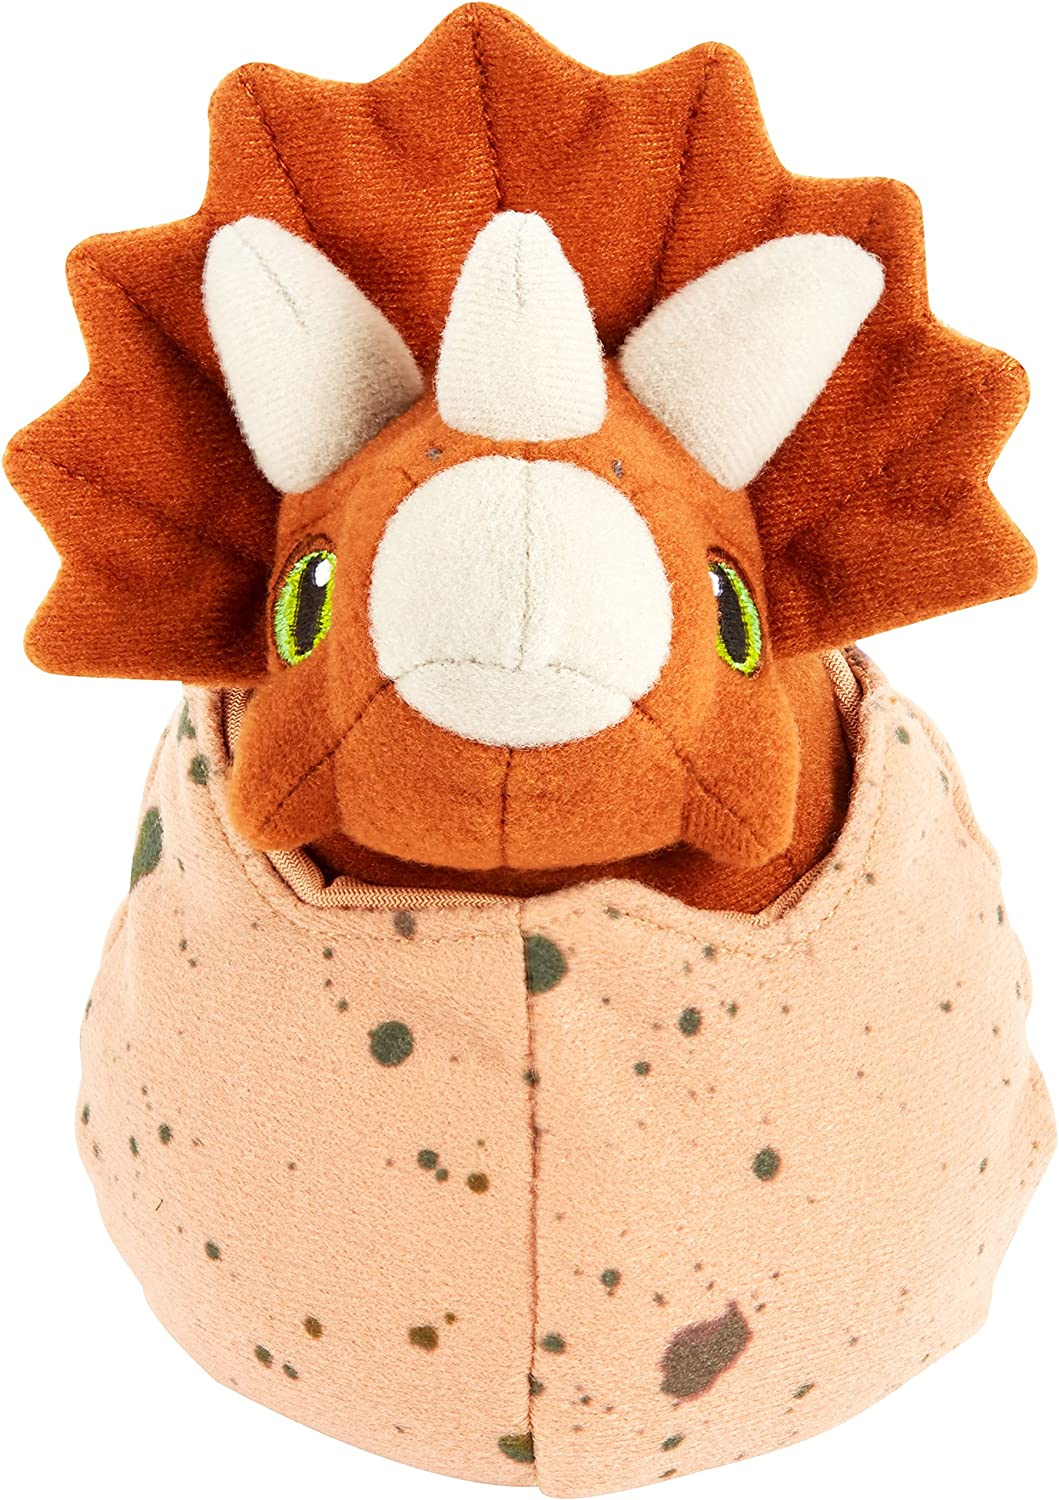 Aurora Monkey Stuffed Animal, Jurassic World Triceratops Mini Plush Mattel Gdm86 Stuffed Animals Plush Toys Plush Figures